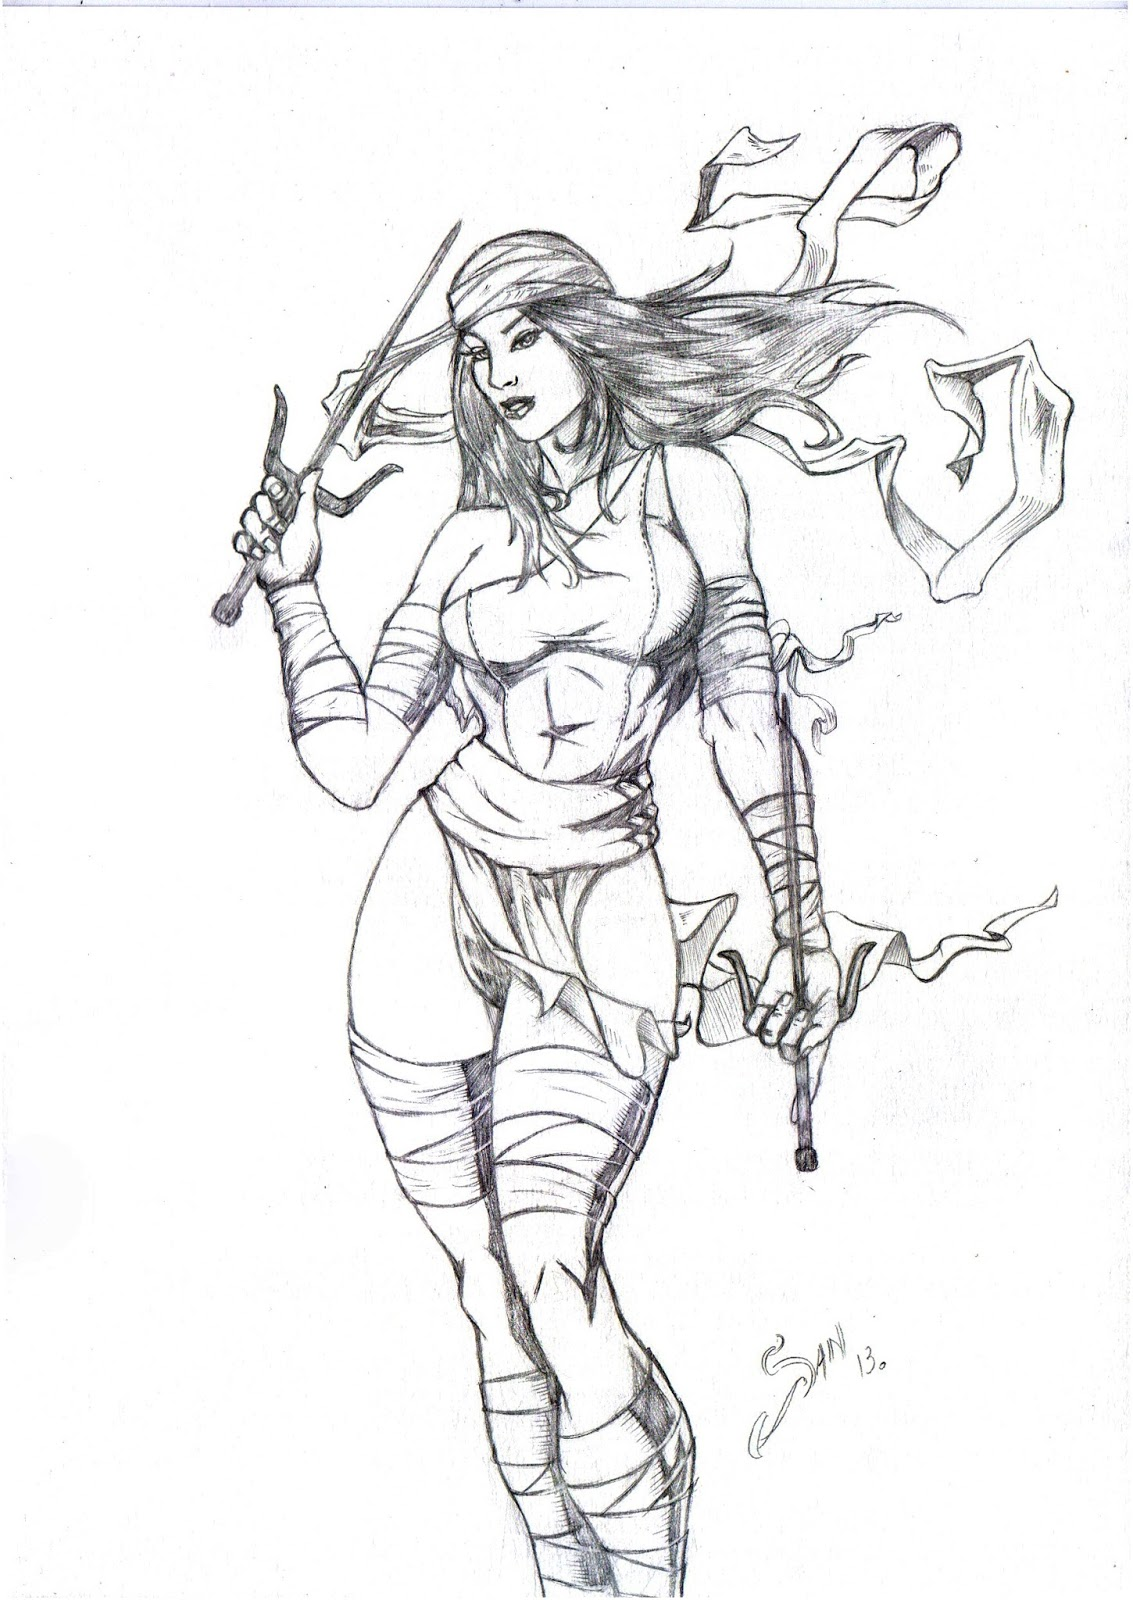 Elektra+by+Sandro+Costa.jpg